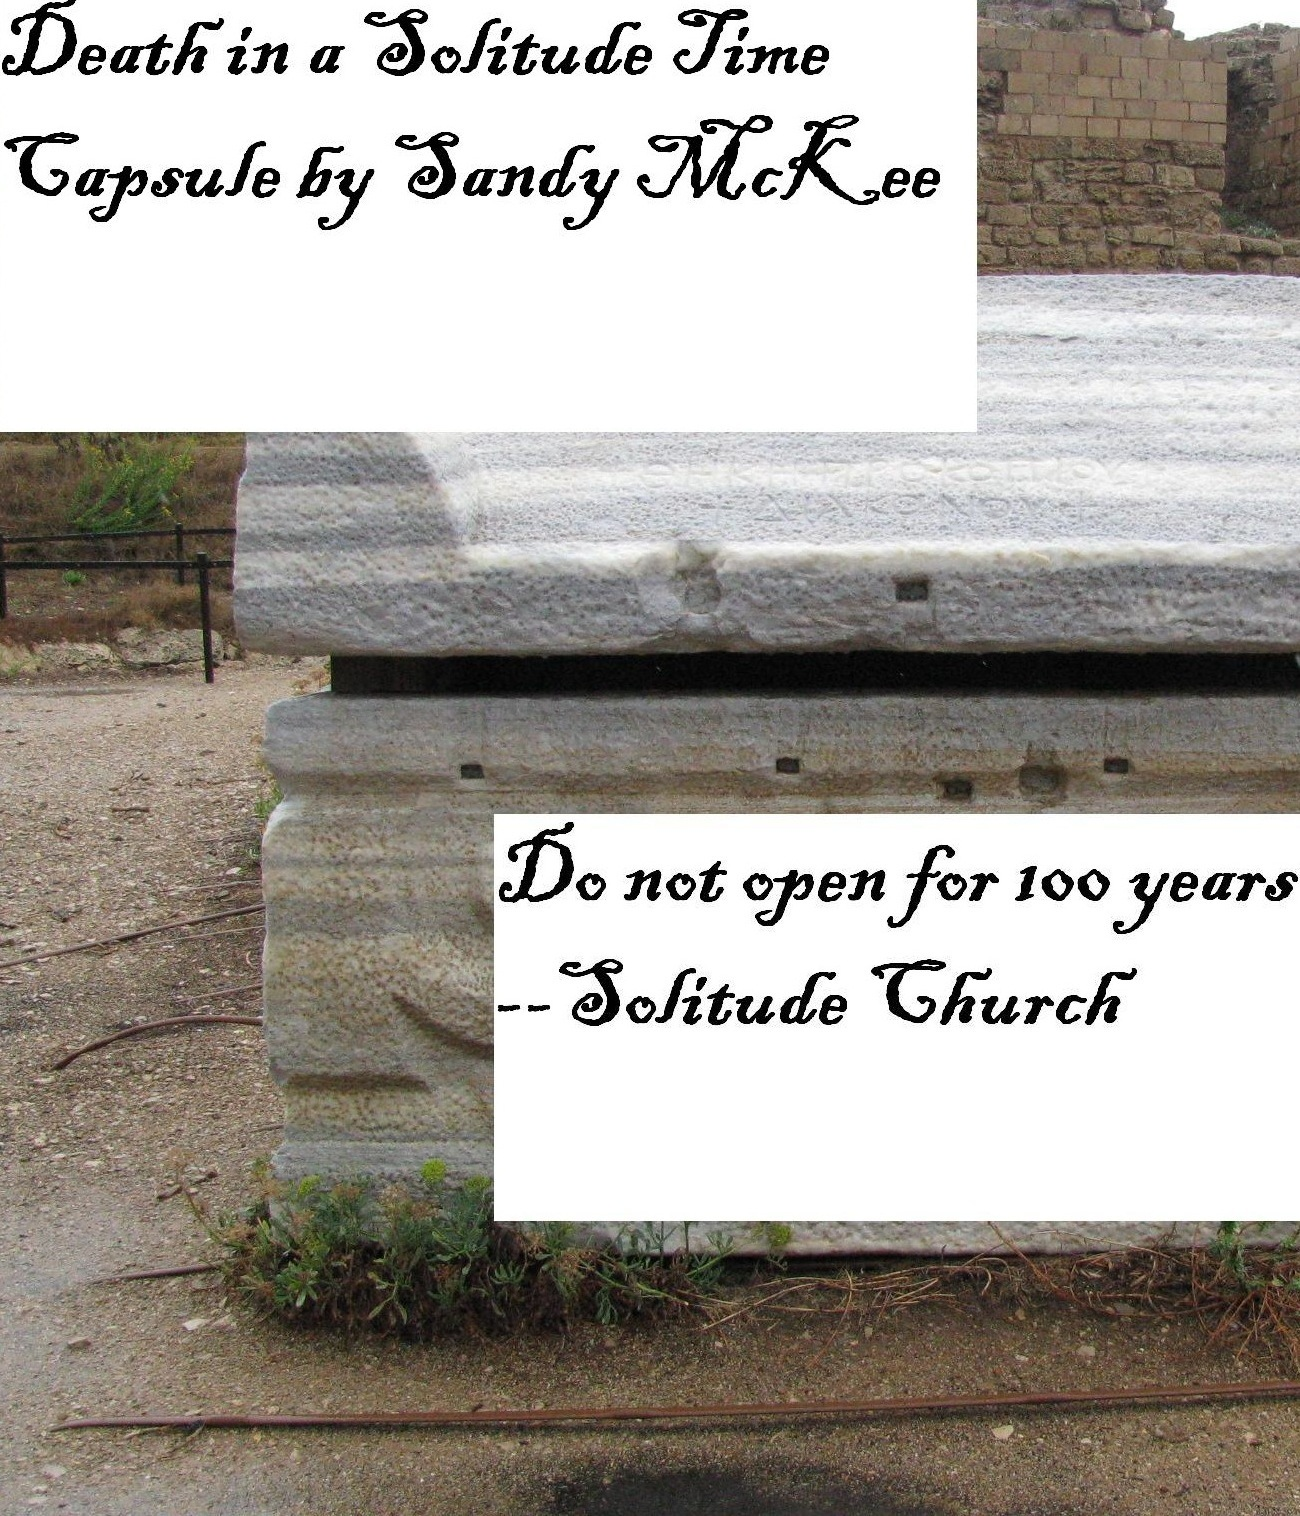 Death in a Solitude Time Capsule By: Saundra McKee